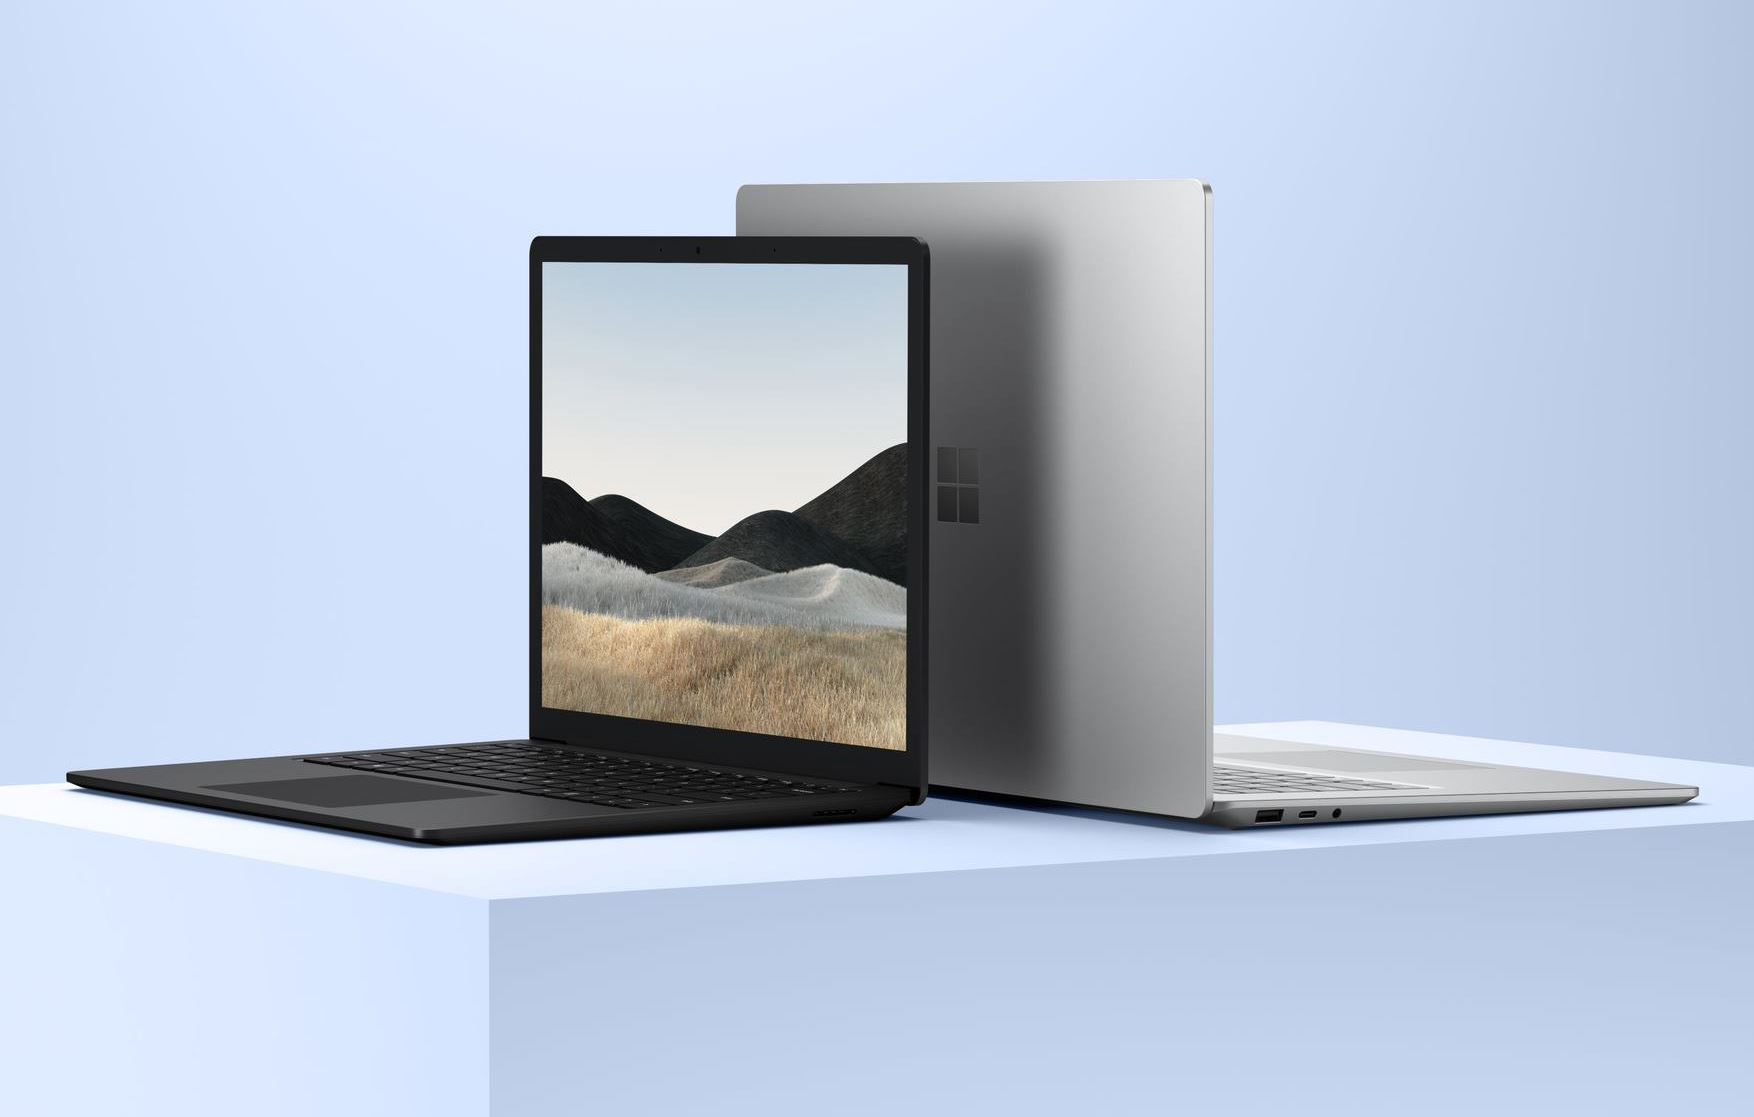 Microsoft lancia Surface Laptop 4 e una serie di accessori